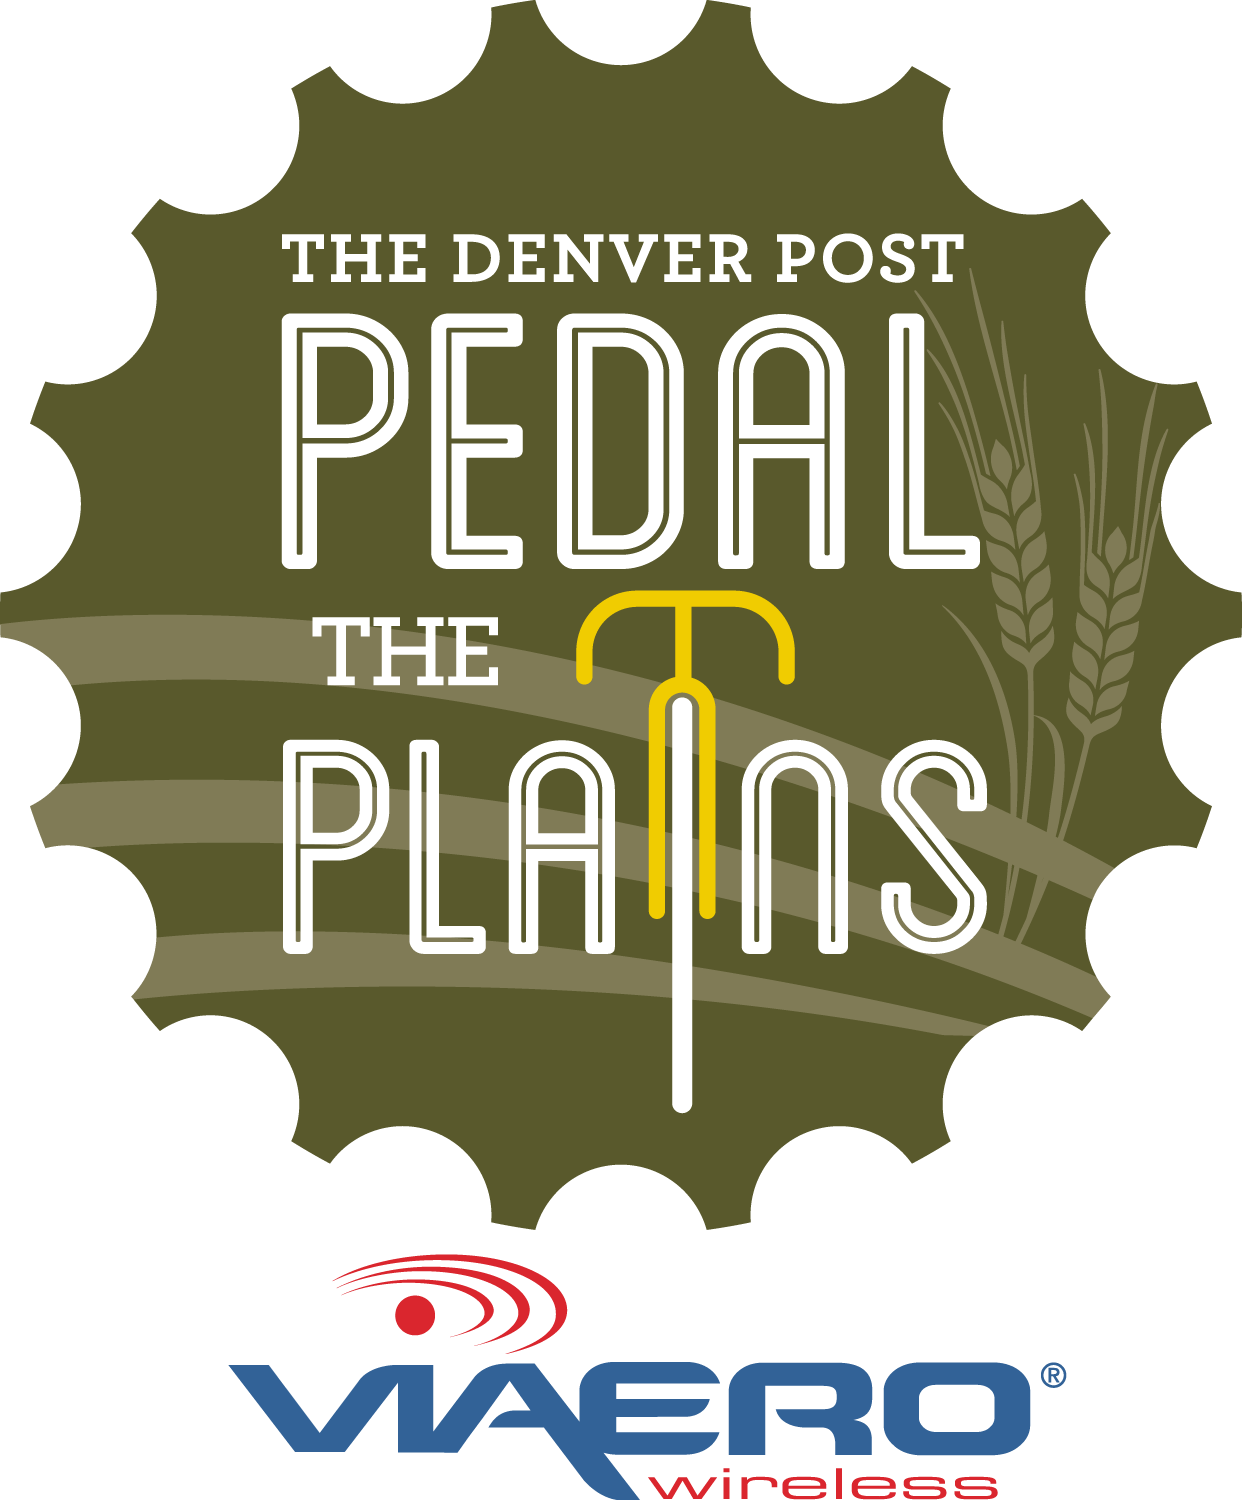 Pedal The Plains logo 2013